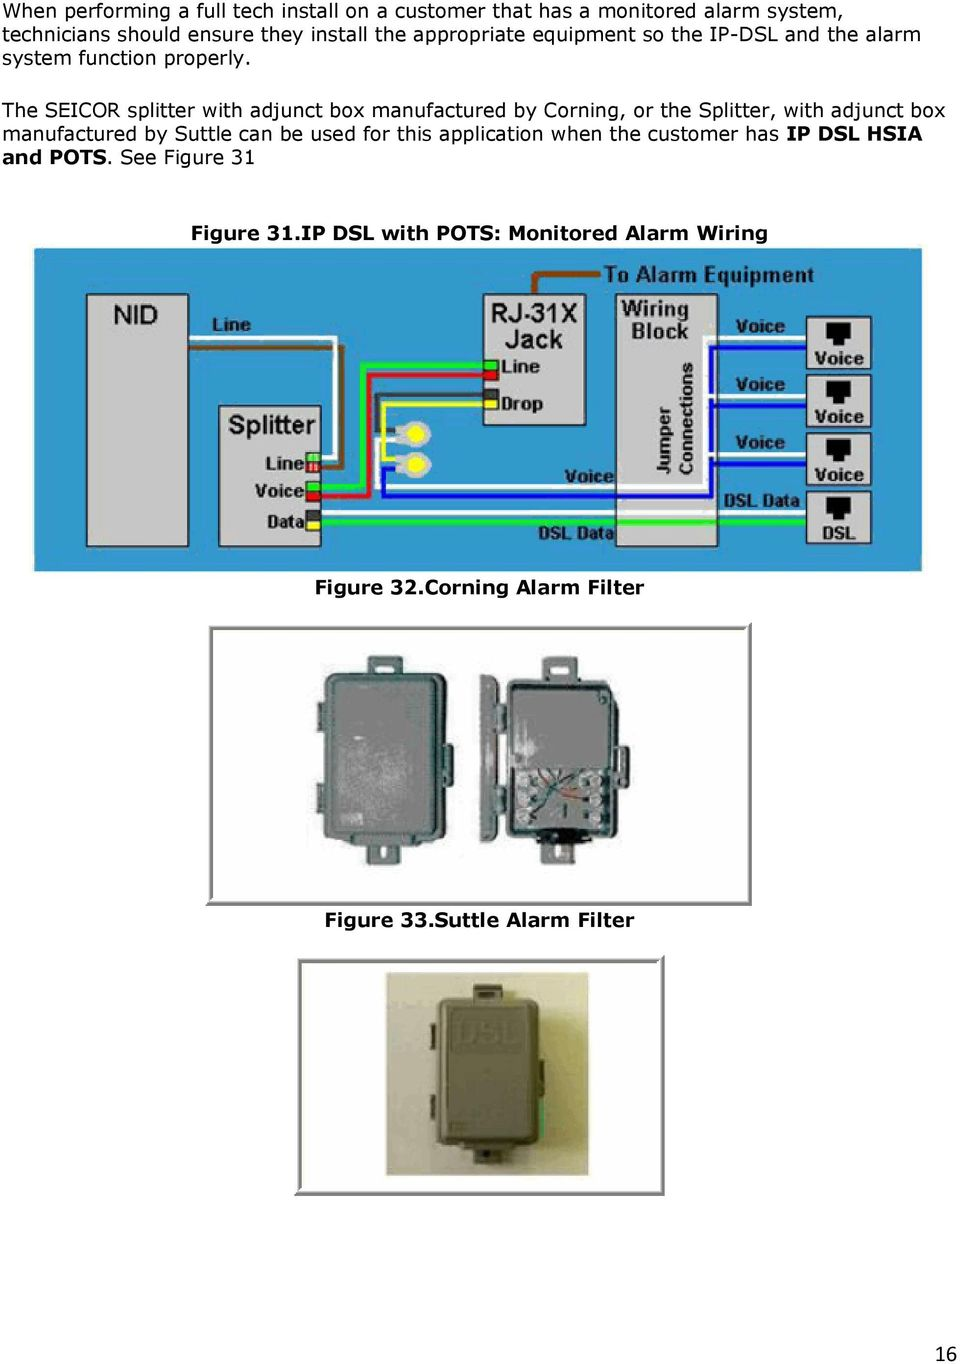 Hospital Electrical Project 65831 moreover Cat5e Phone Wiring Diagram together with Electrical Junction Box Wiring Diagrams Residential also Openhouse wire furthermore Cat5e Wall Plate Wiring Diagram. on residential telephone junction box